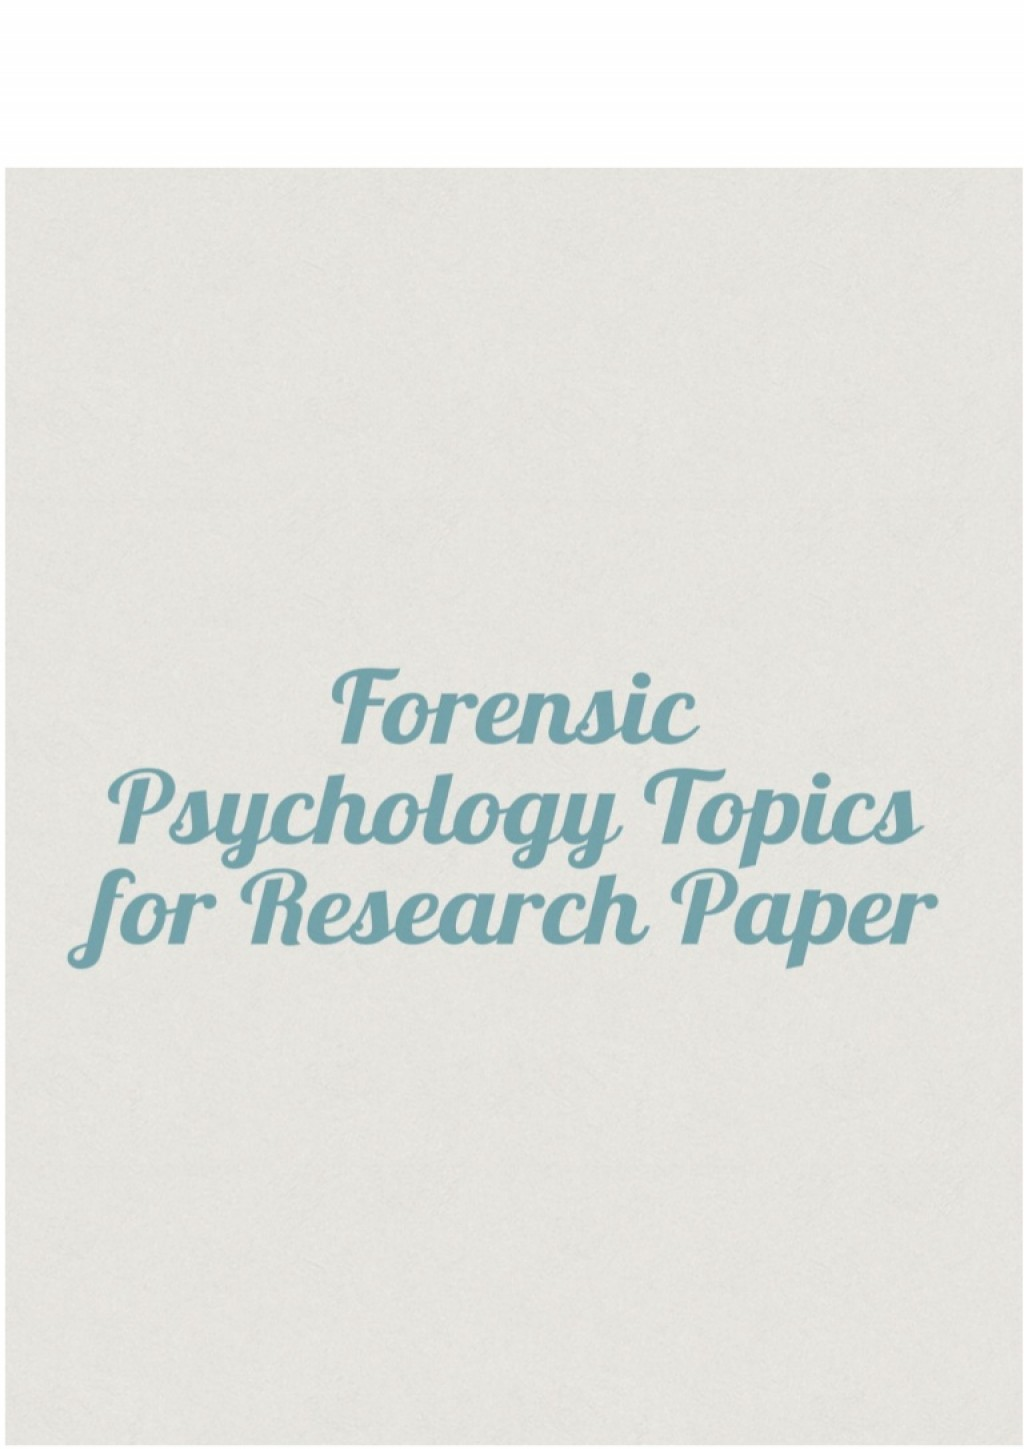 008 Psychology Topics For Research Paper Forensicpsychologytopicsforresearchpaper Thumbnail Wondrous Child Papers Abnormal Large